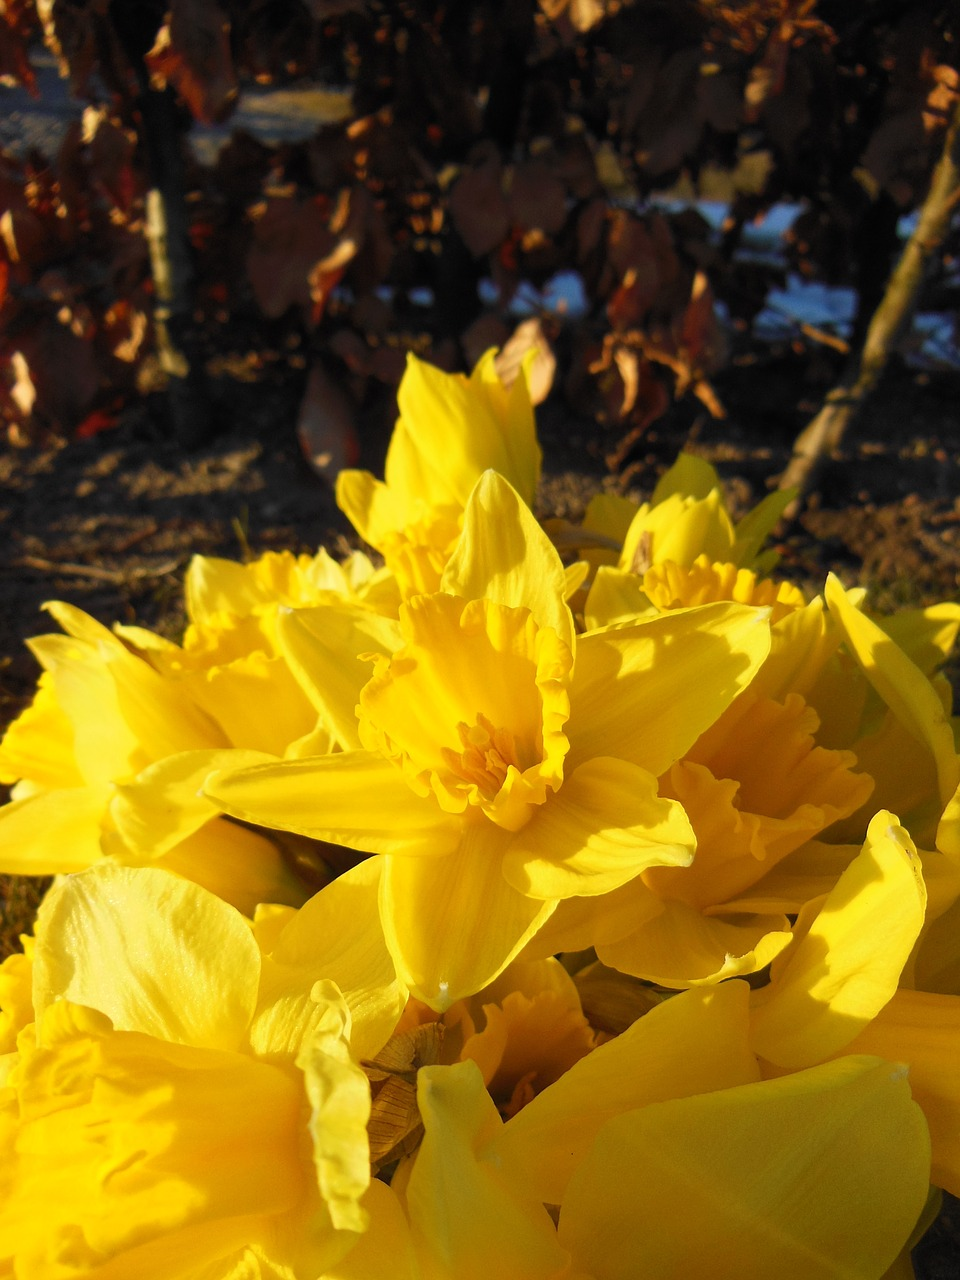 daffodils close-up harbingers of spring free photo